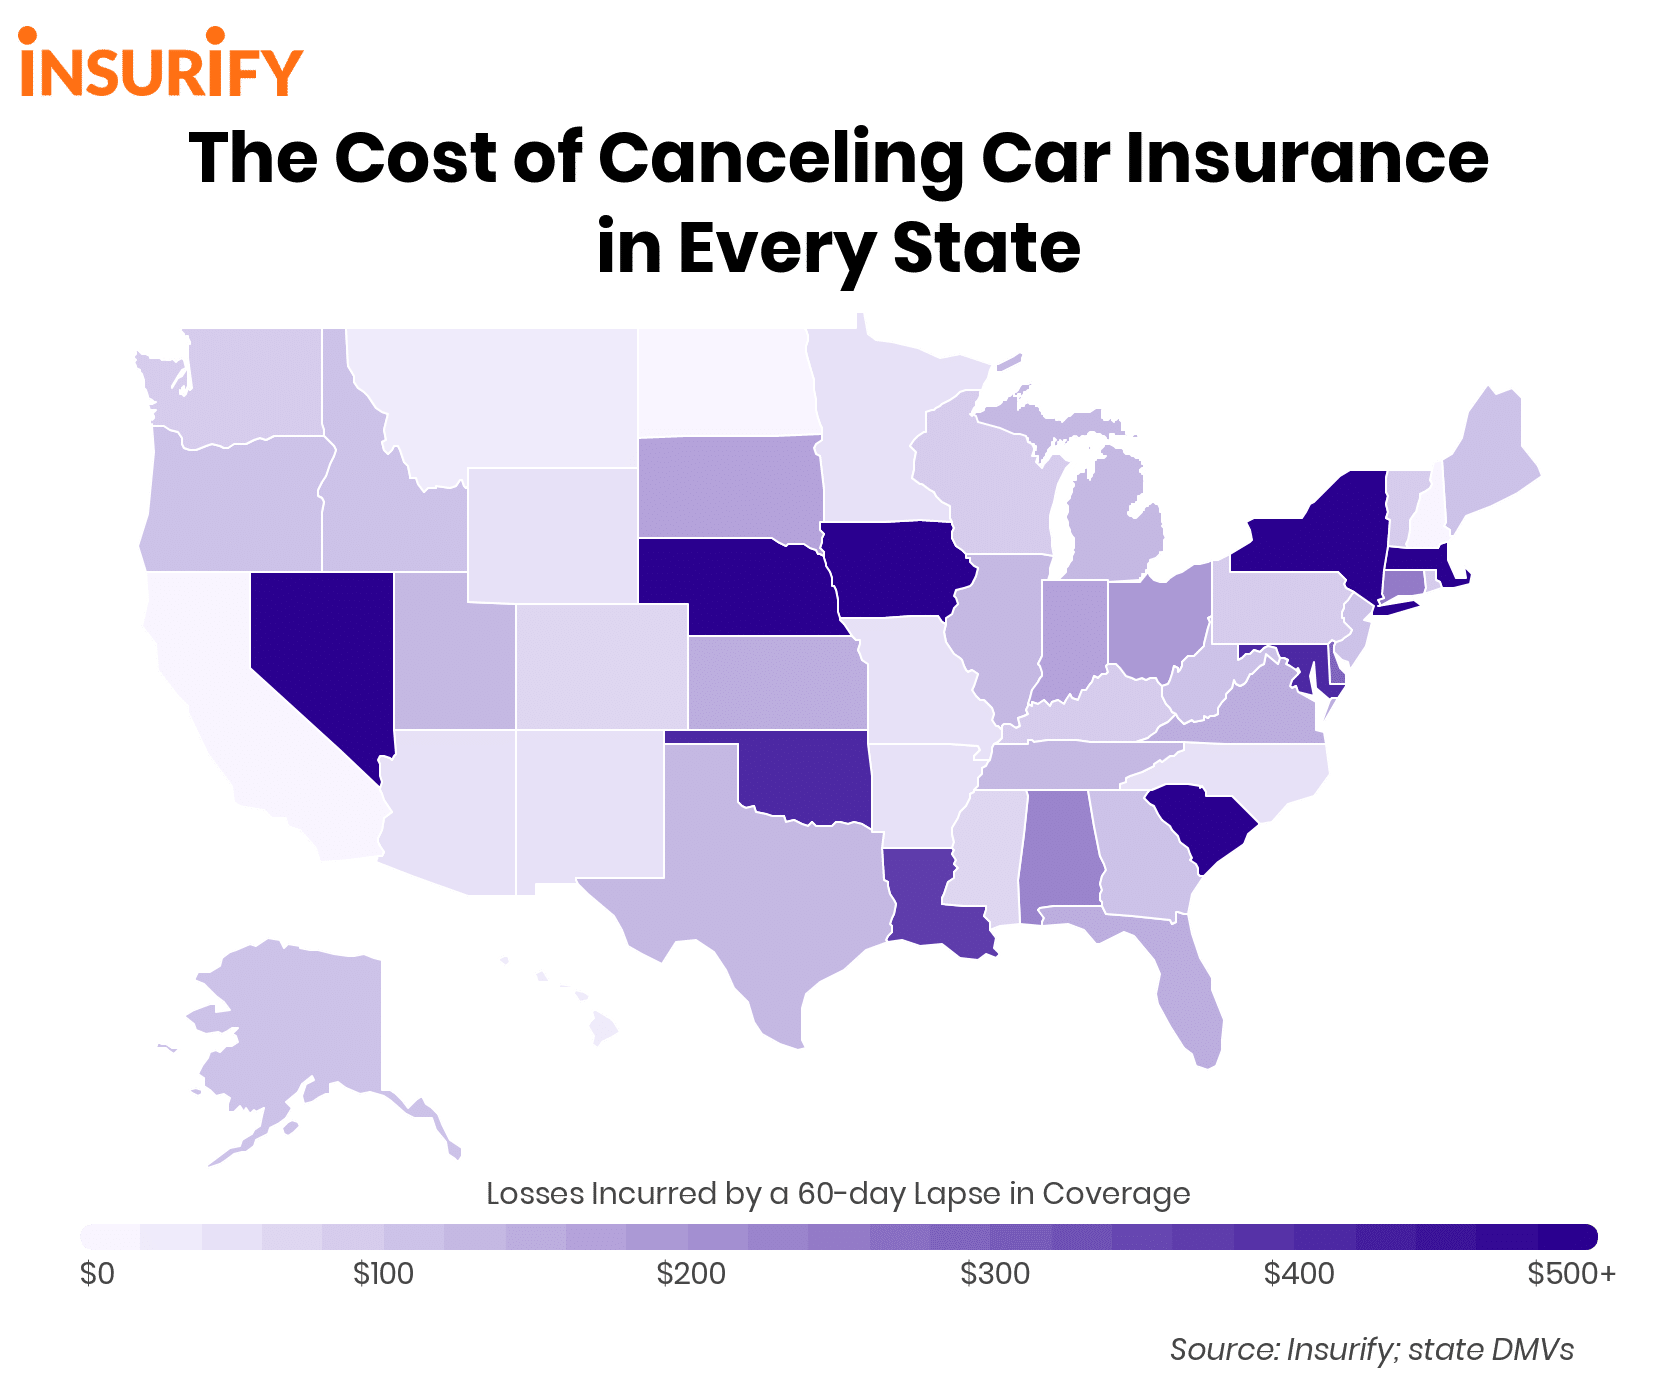 The Cost of Canceling Car Insurance in Every State